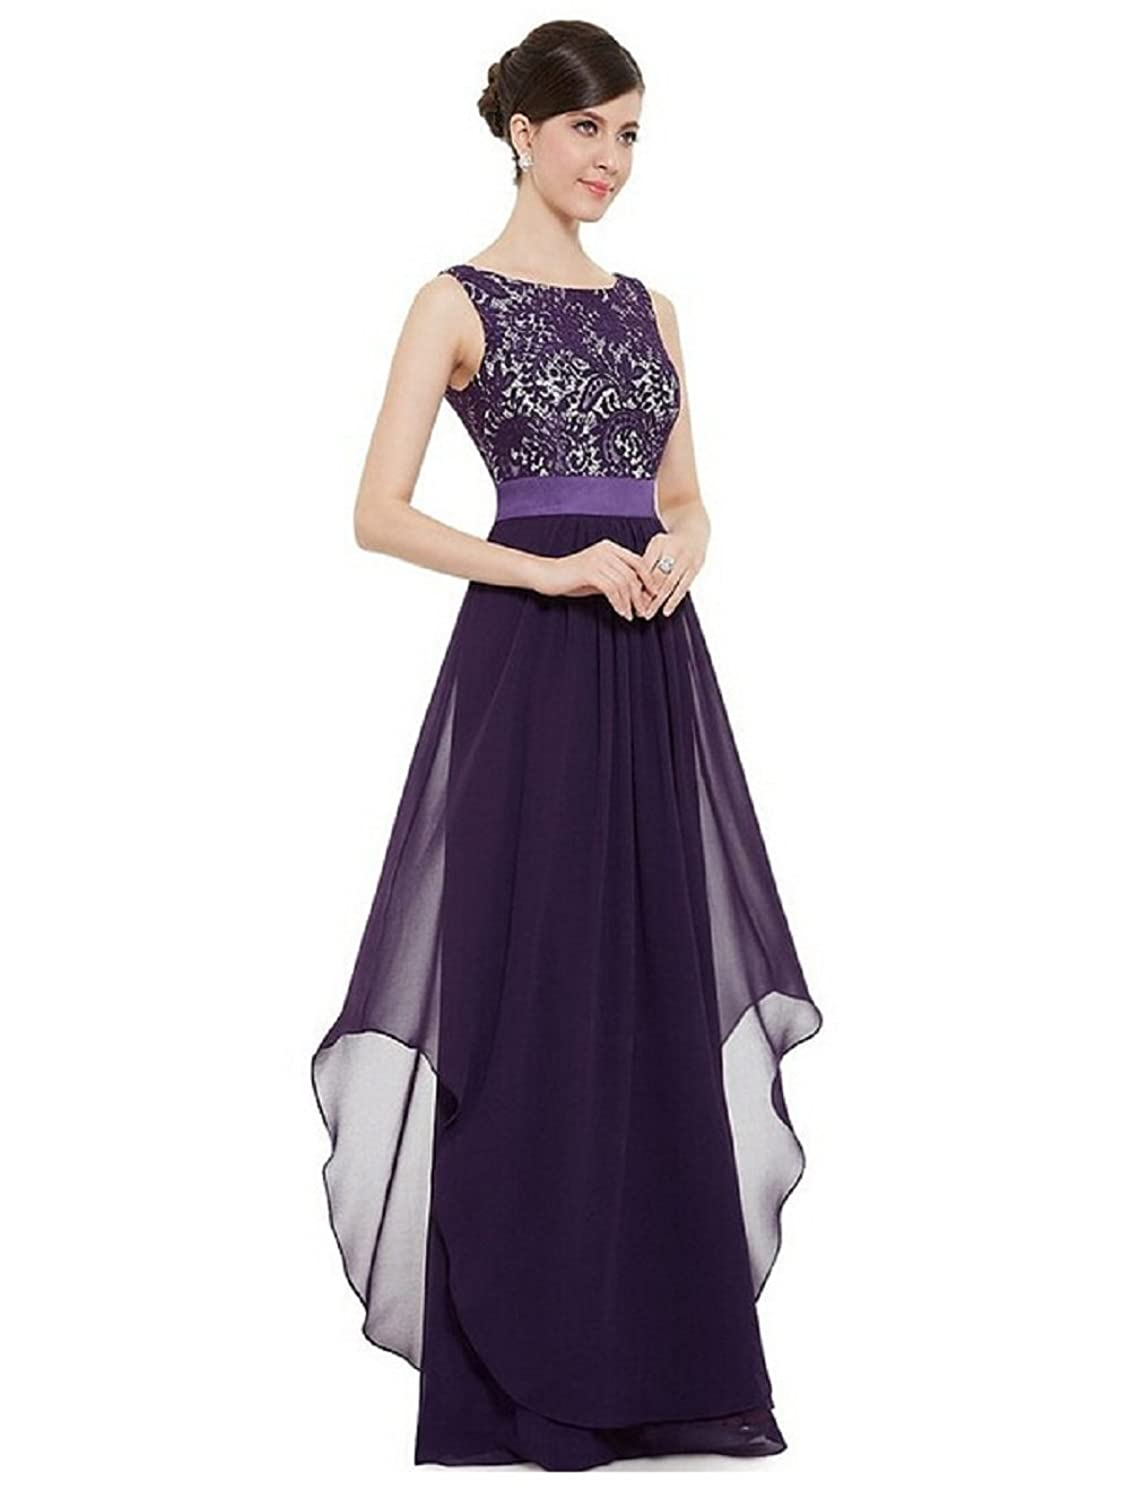 QIYUSHOW Women's Grace Fashion Evening Dresses Party Prom Gown